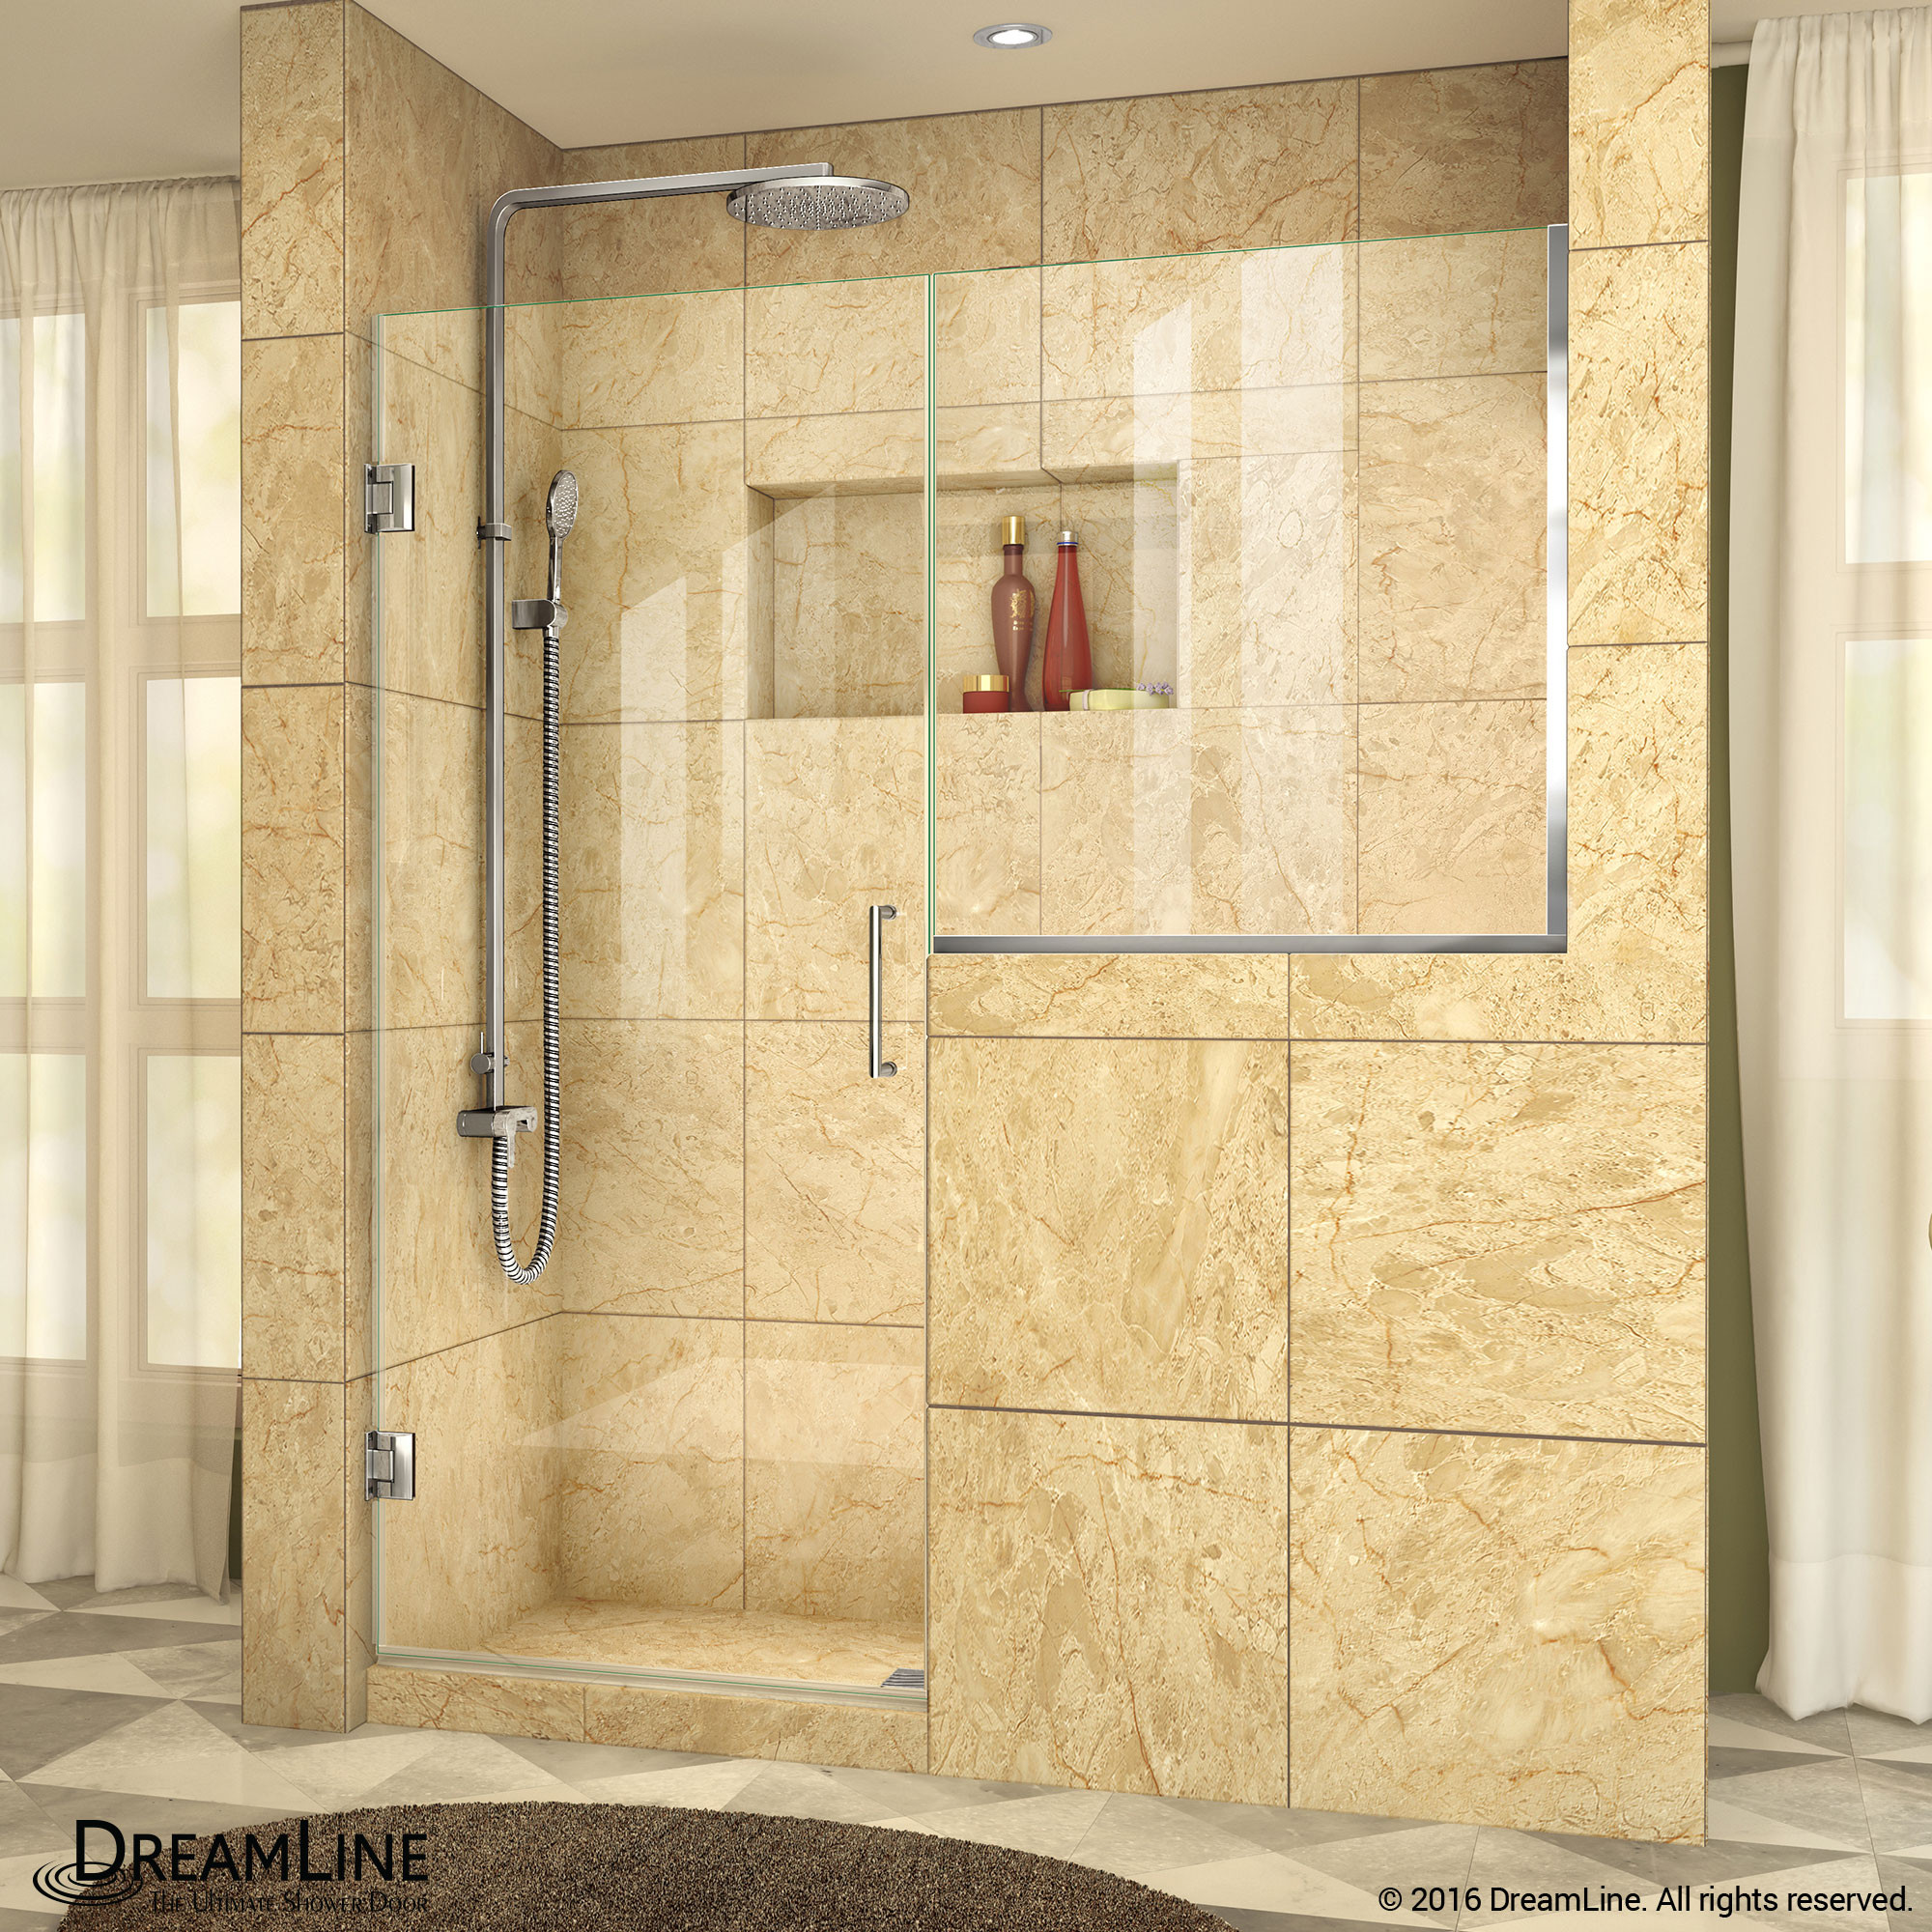 DreamLine SHDR-24273036 Unidoor Plus 57 - 57 1/2 in. W x 72 in. H Hinged Shower Door